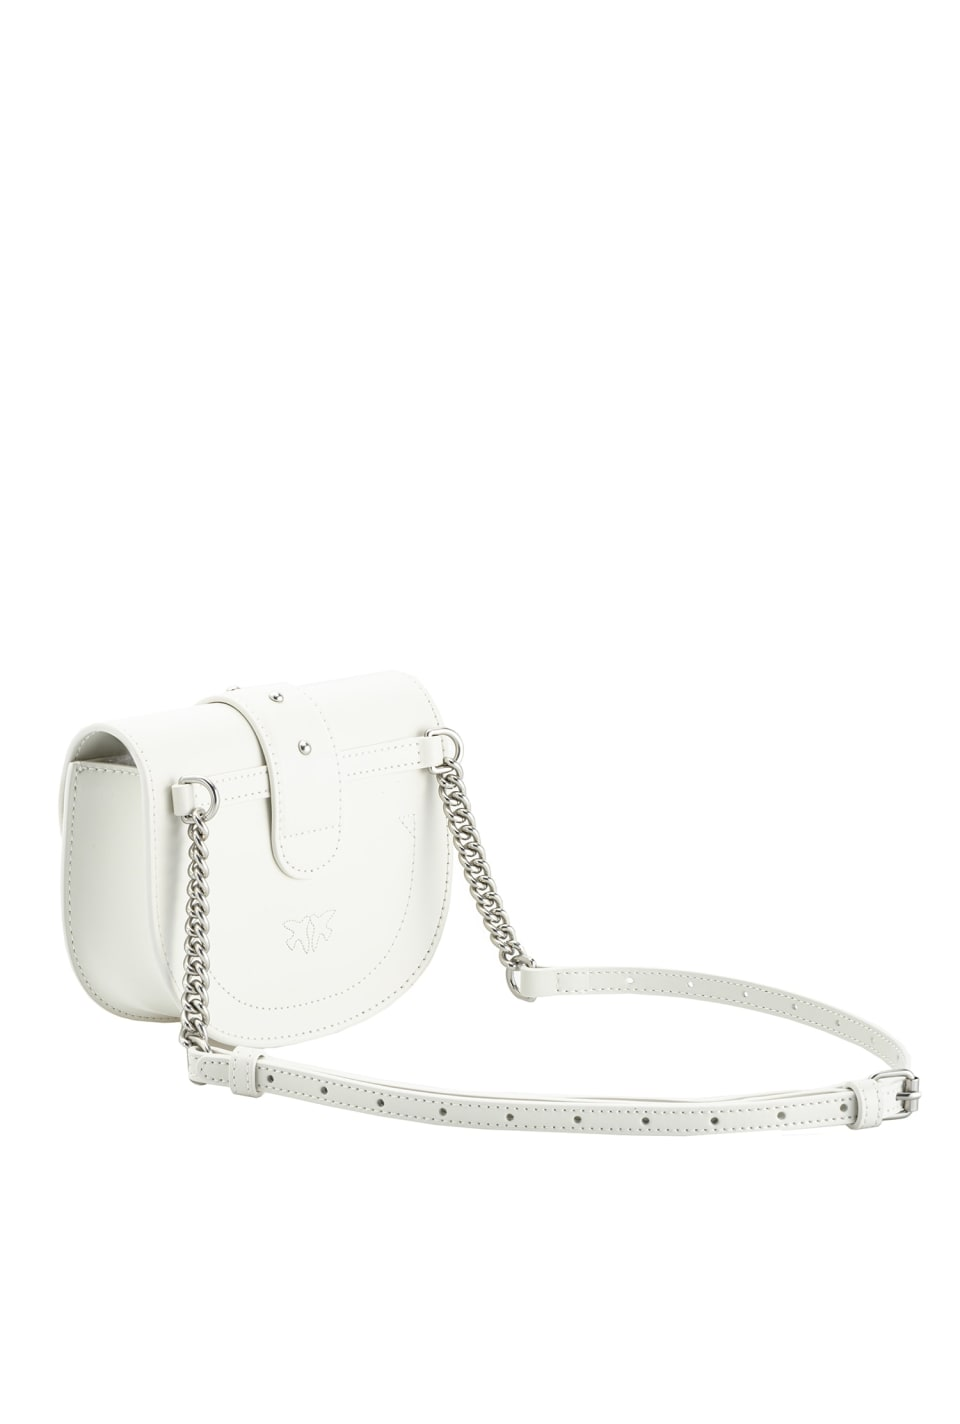 Leather Go-Round Bag Simply - Pinko